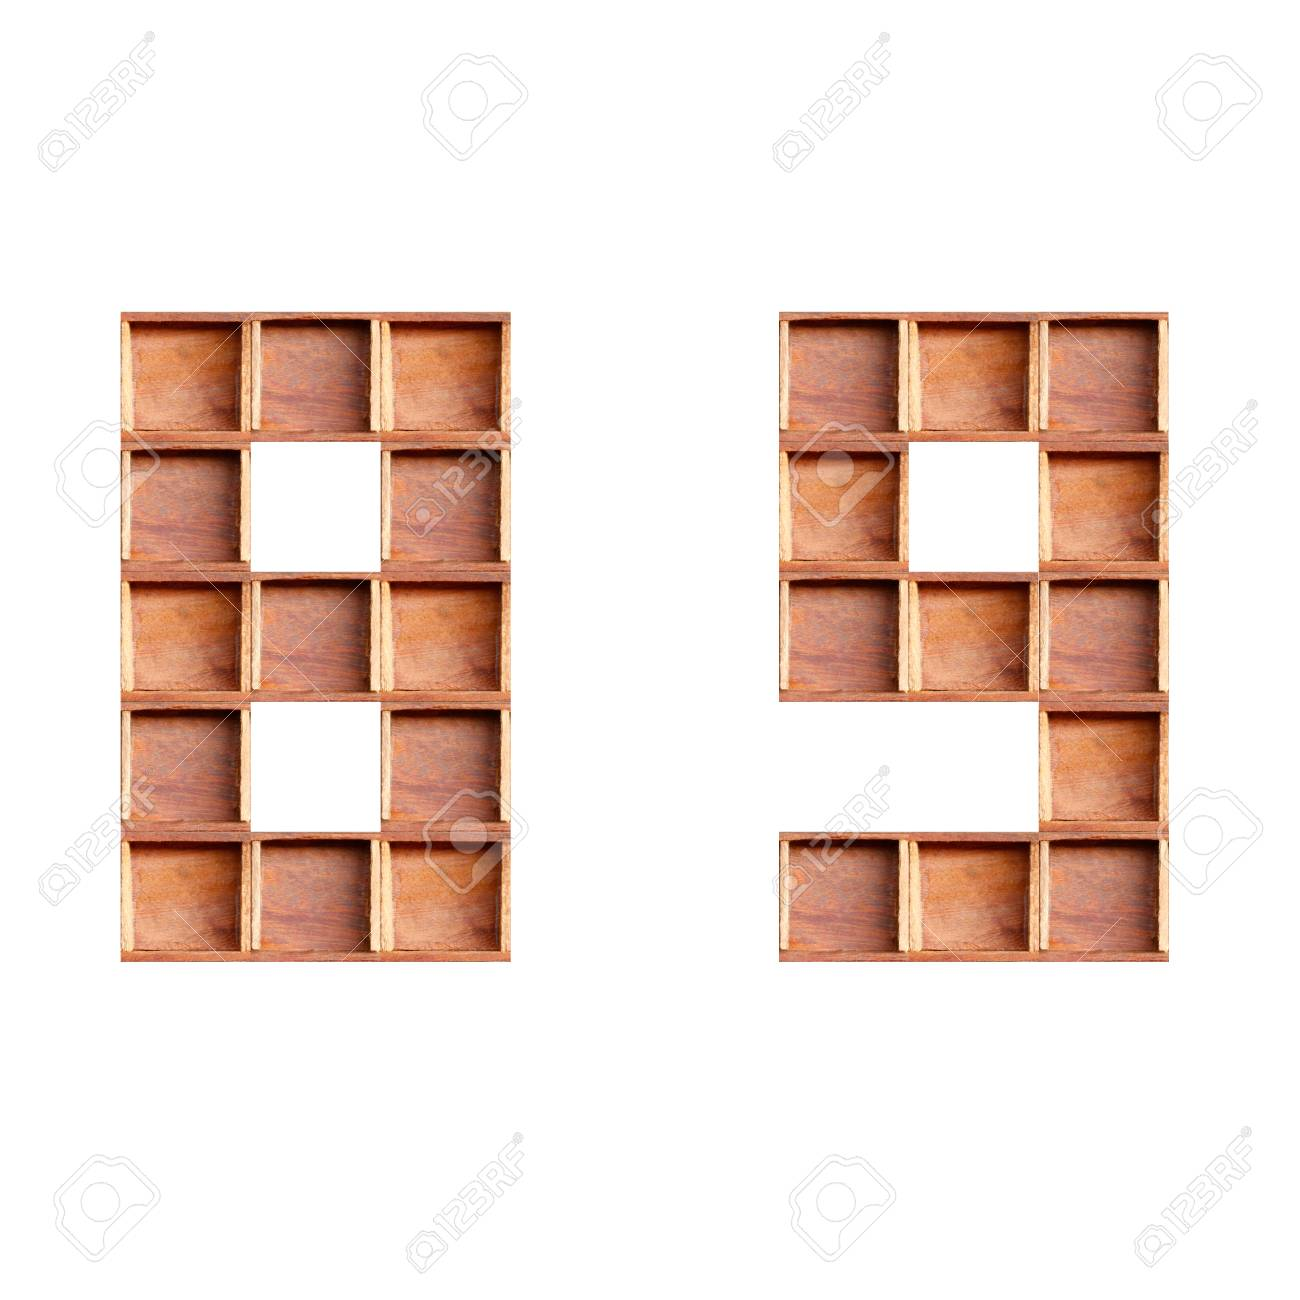 wooden box made of numbers  isolated on white background Stock Photo - 28232170